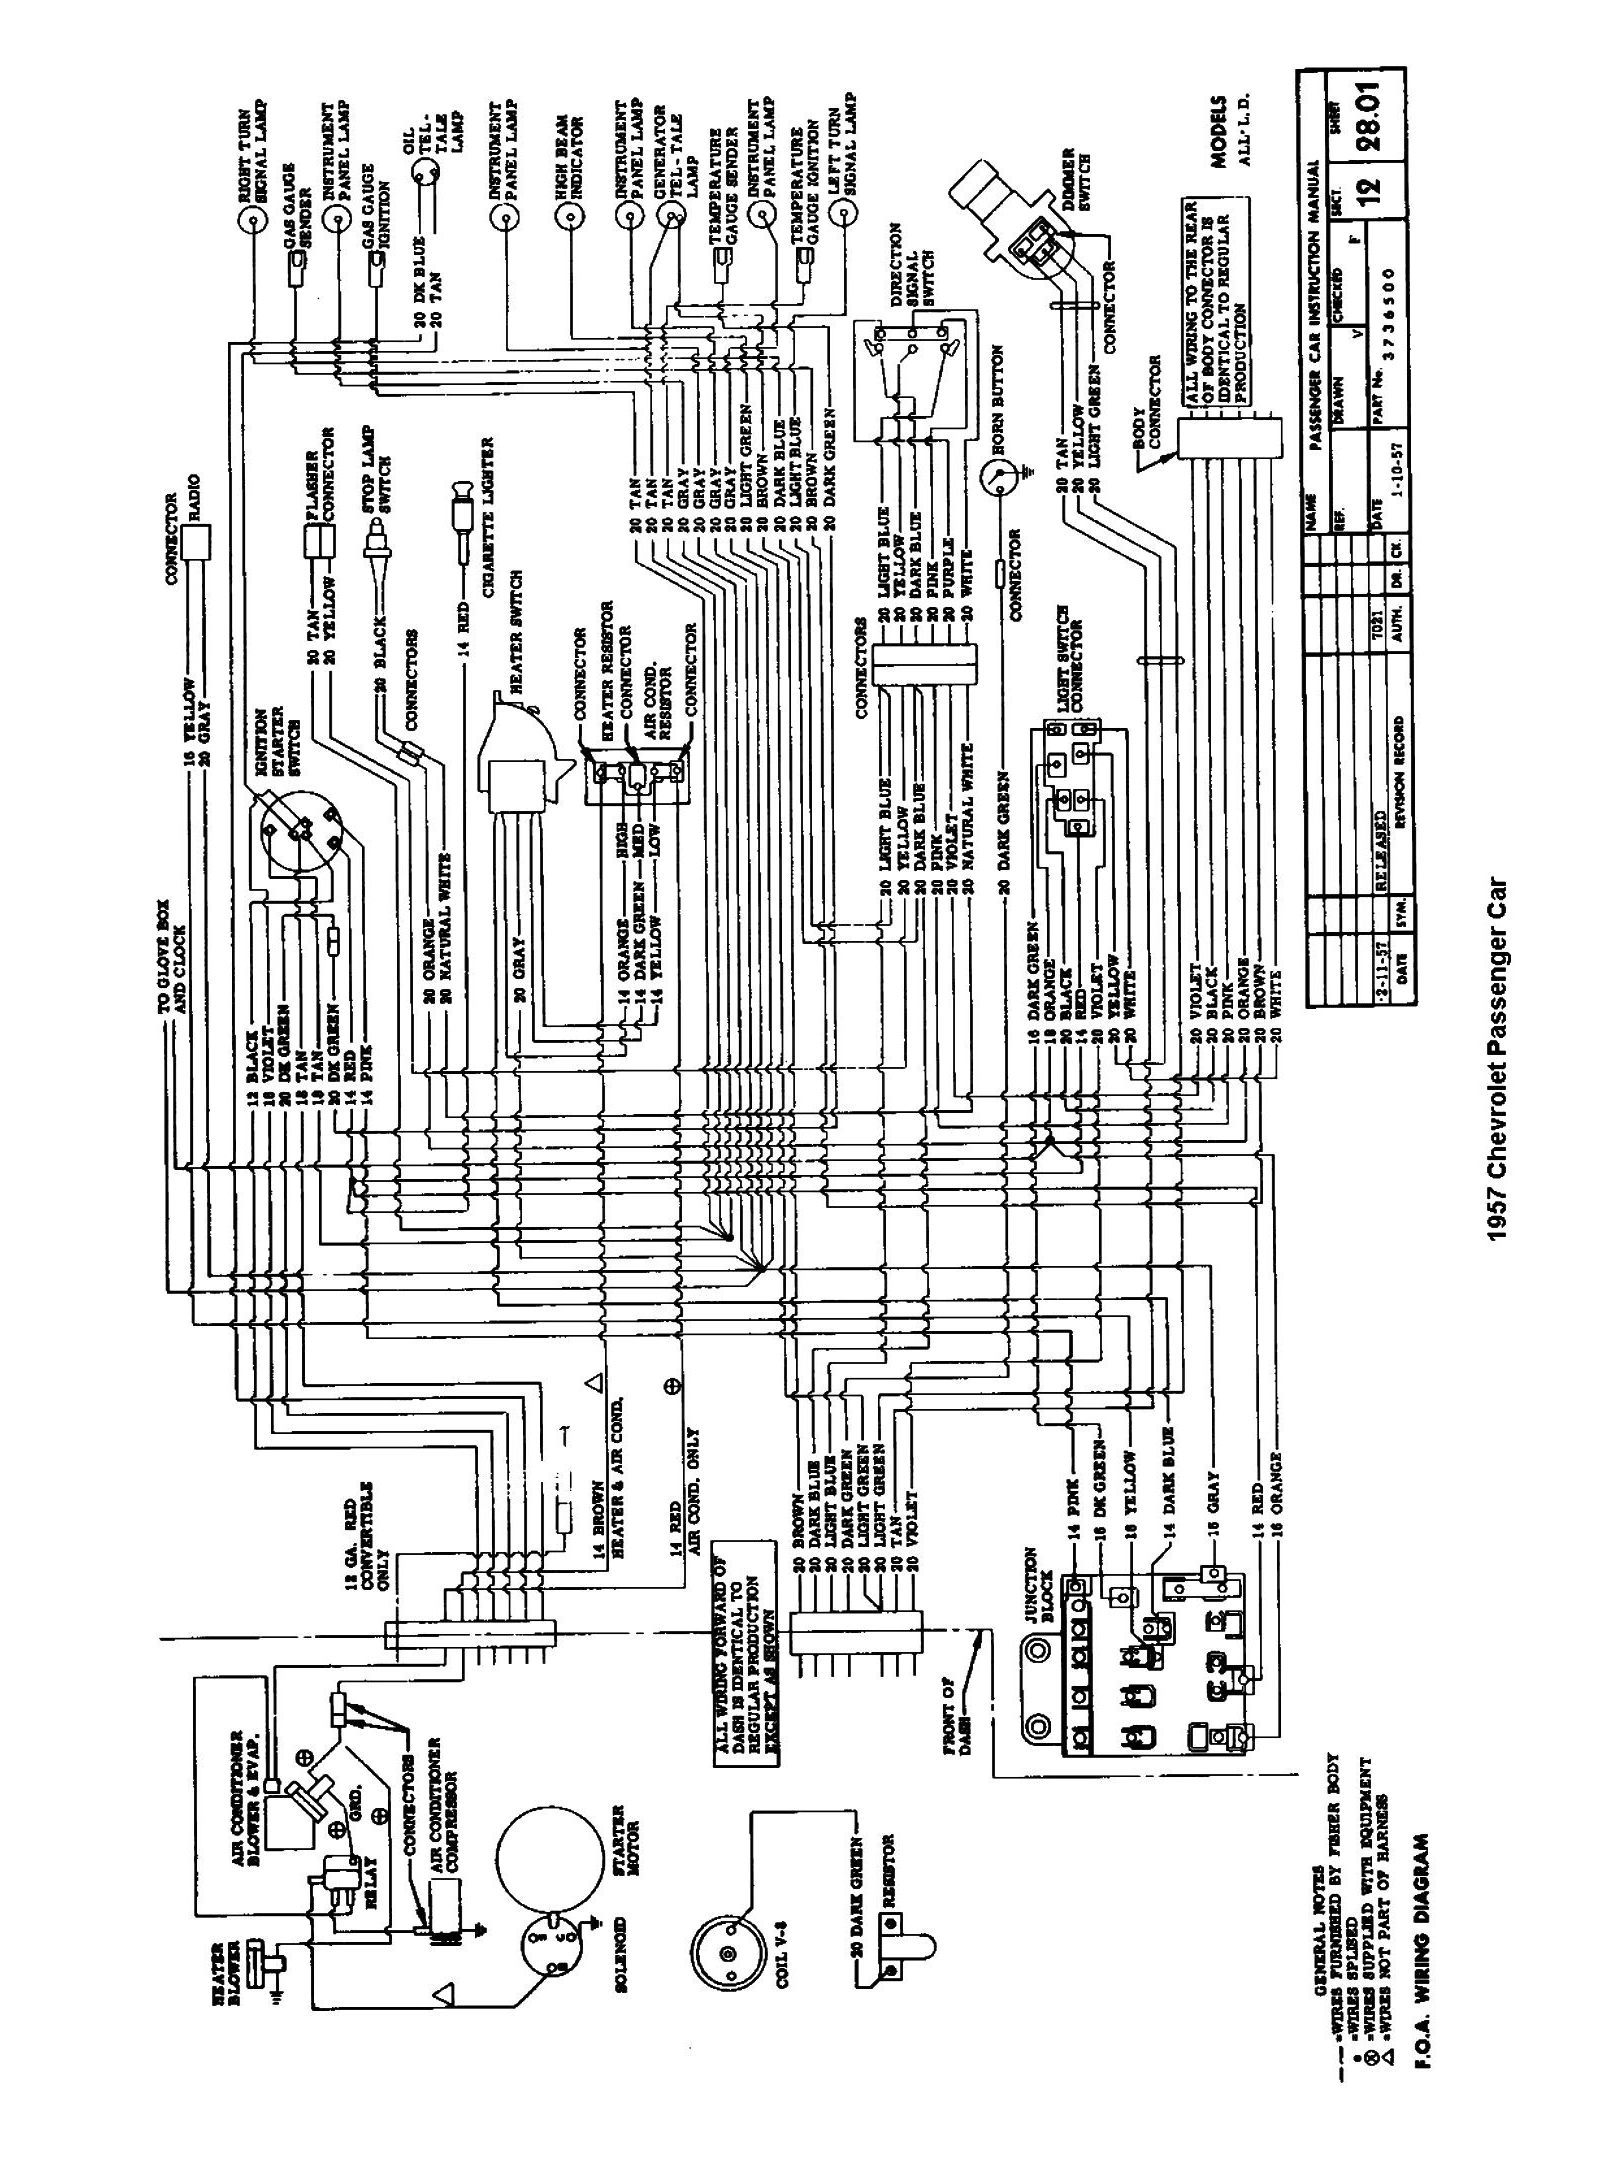 1957 Gmc Headlight Wiring Diagram List Of Schematic Circuit Dimmer Switch Chevy Diagrams Rh Oldcarmanualproject Com